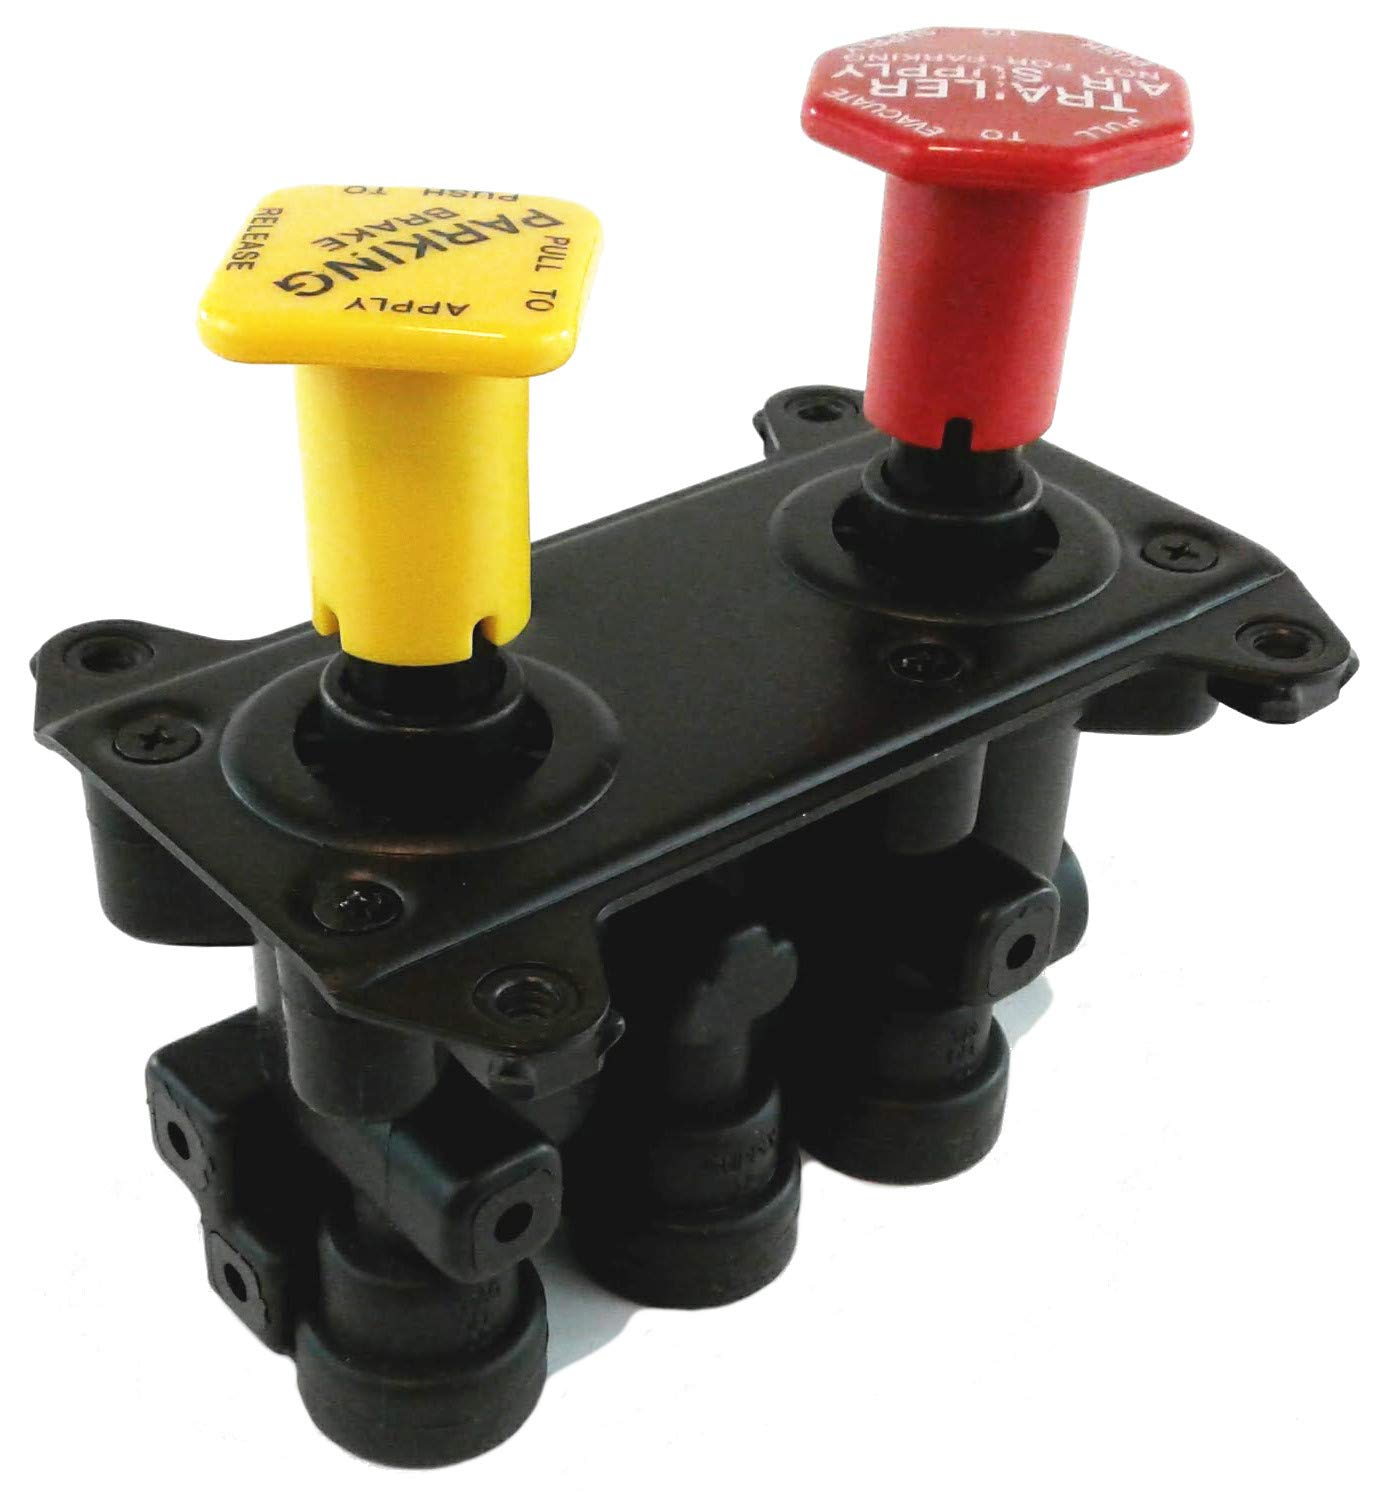 Hand Operated Manifold Dash Brake Valve 1/4'' Trailer Delivery for Heavy Duty Big Rigs by Brianna Auto Parts (BAP) (Image #2)